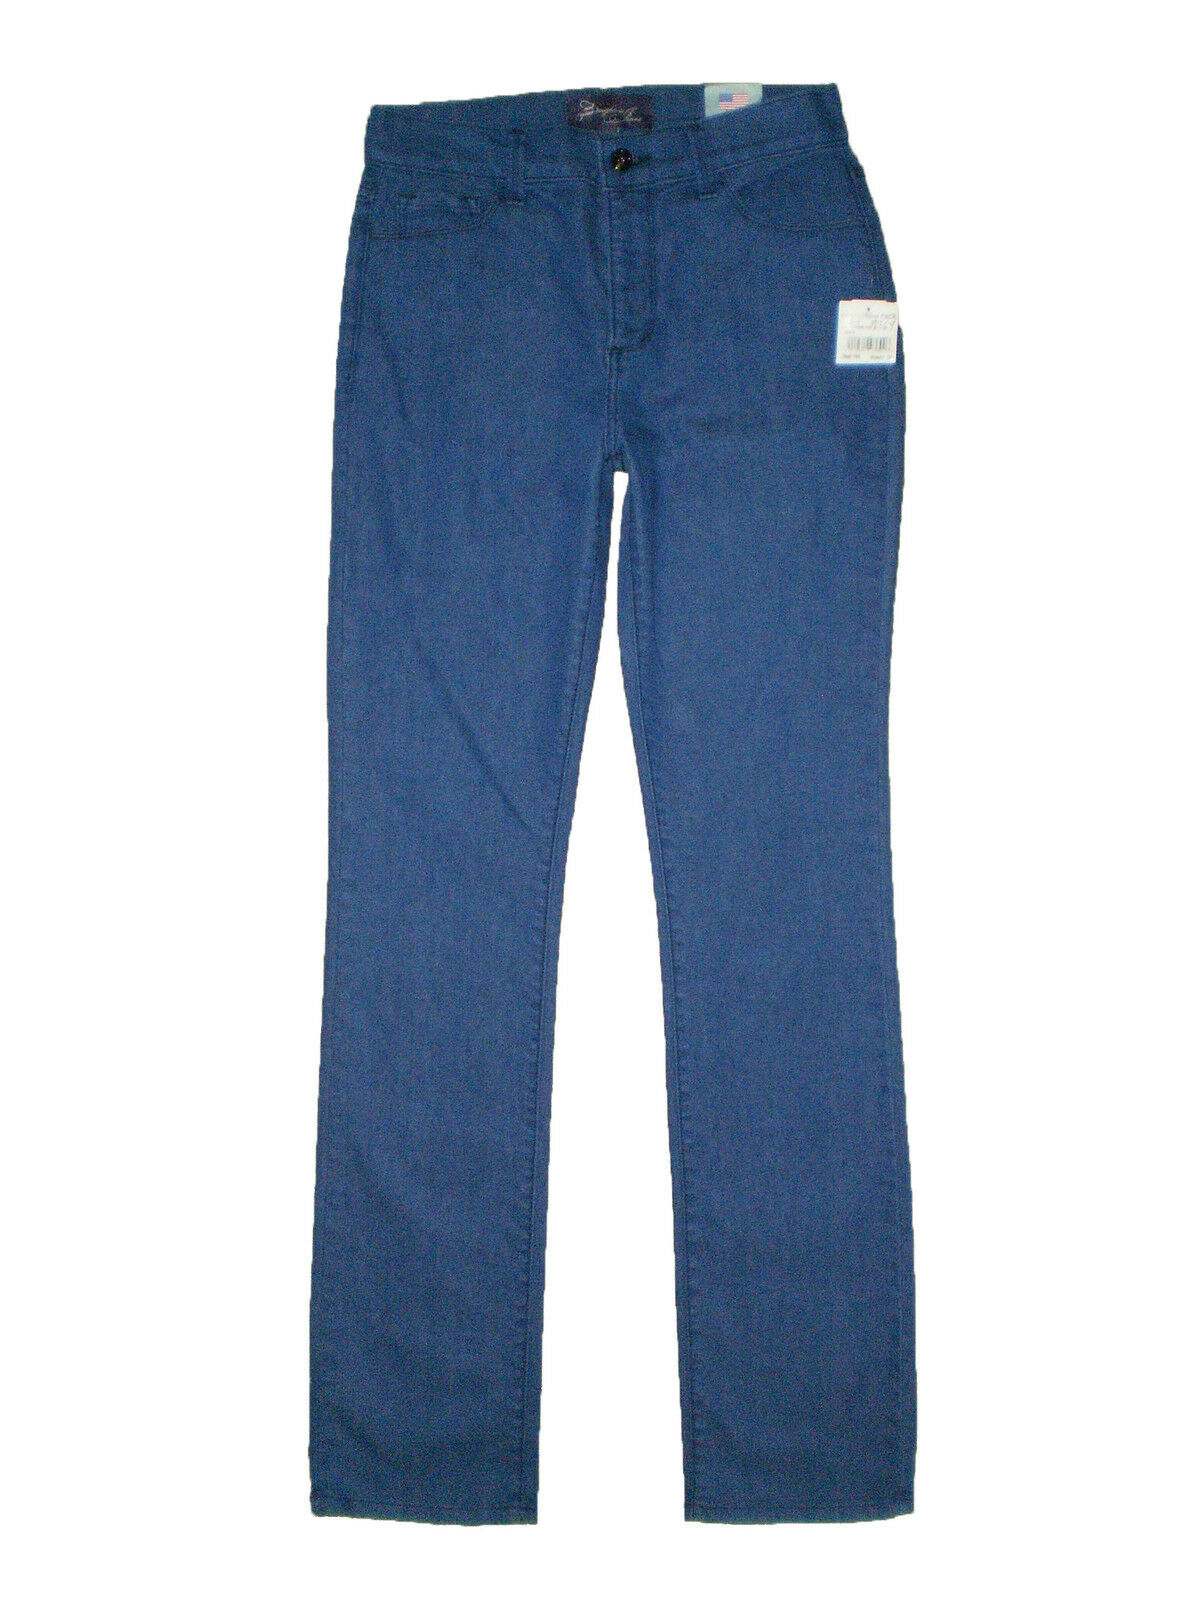 Not Your Daughters Jeans NYDJ Straight Leg Royal bluee Denim Jean Size 6 X 33 New